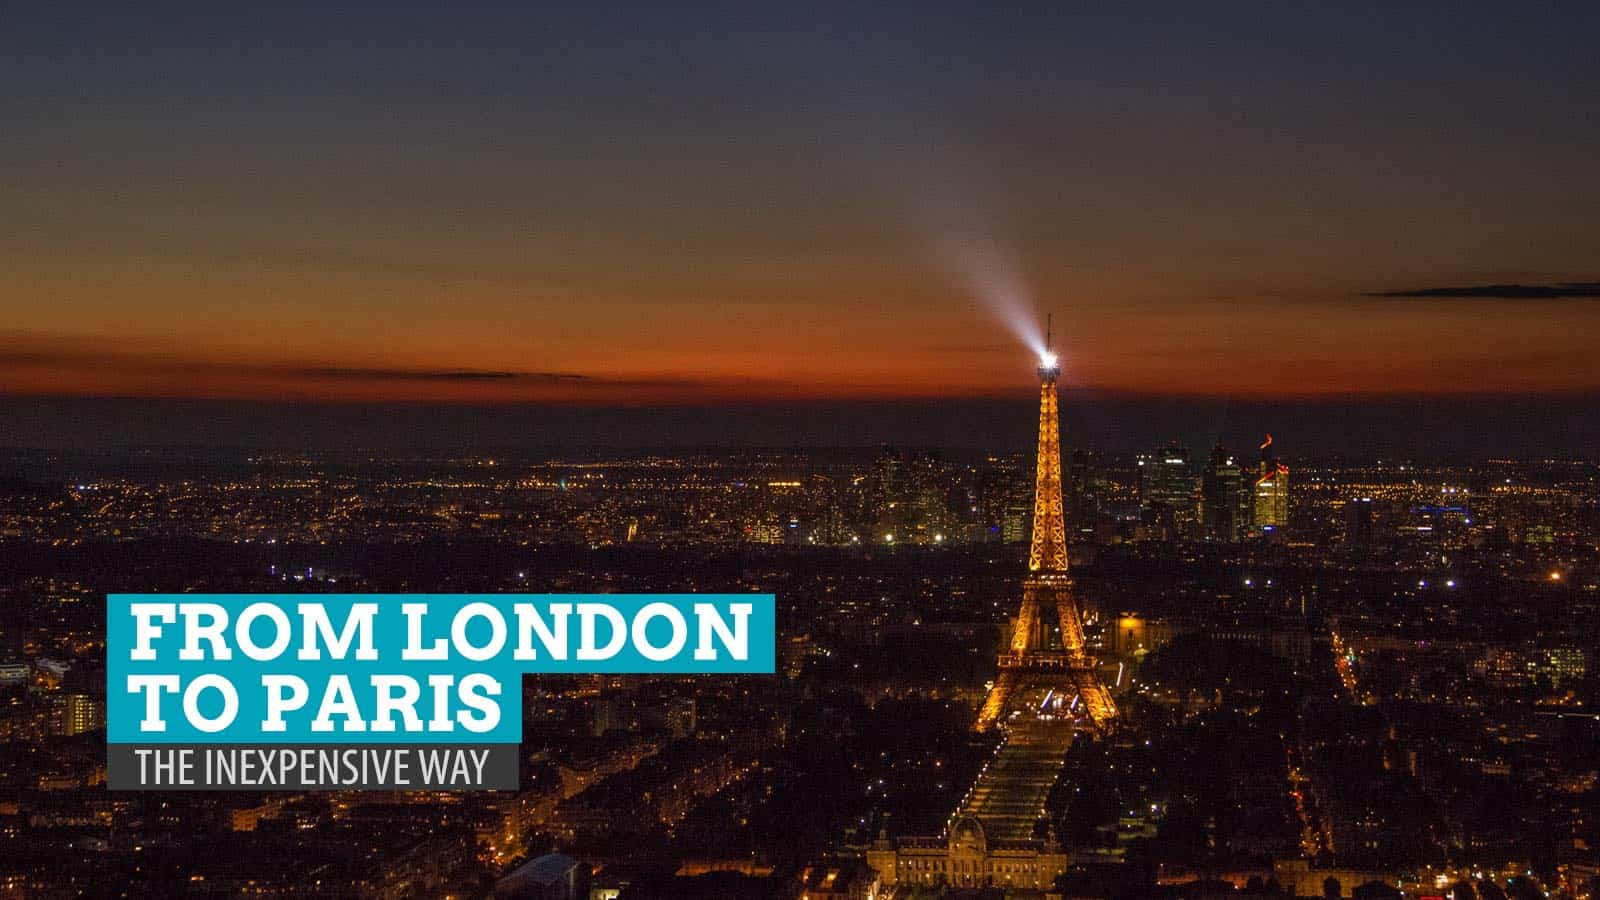 From London to Paris – The Inexpensive Way